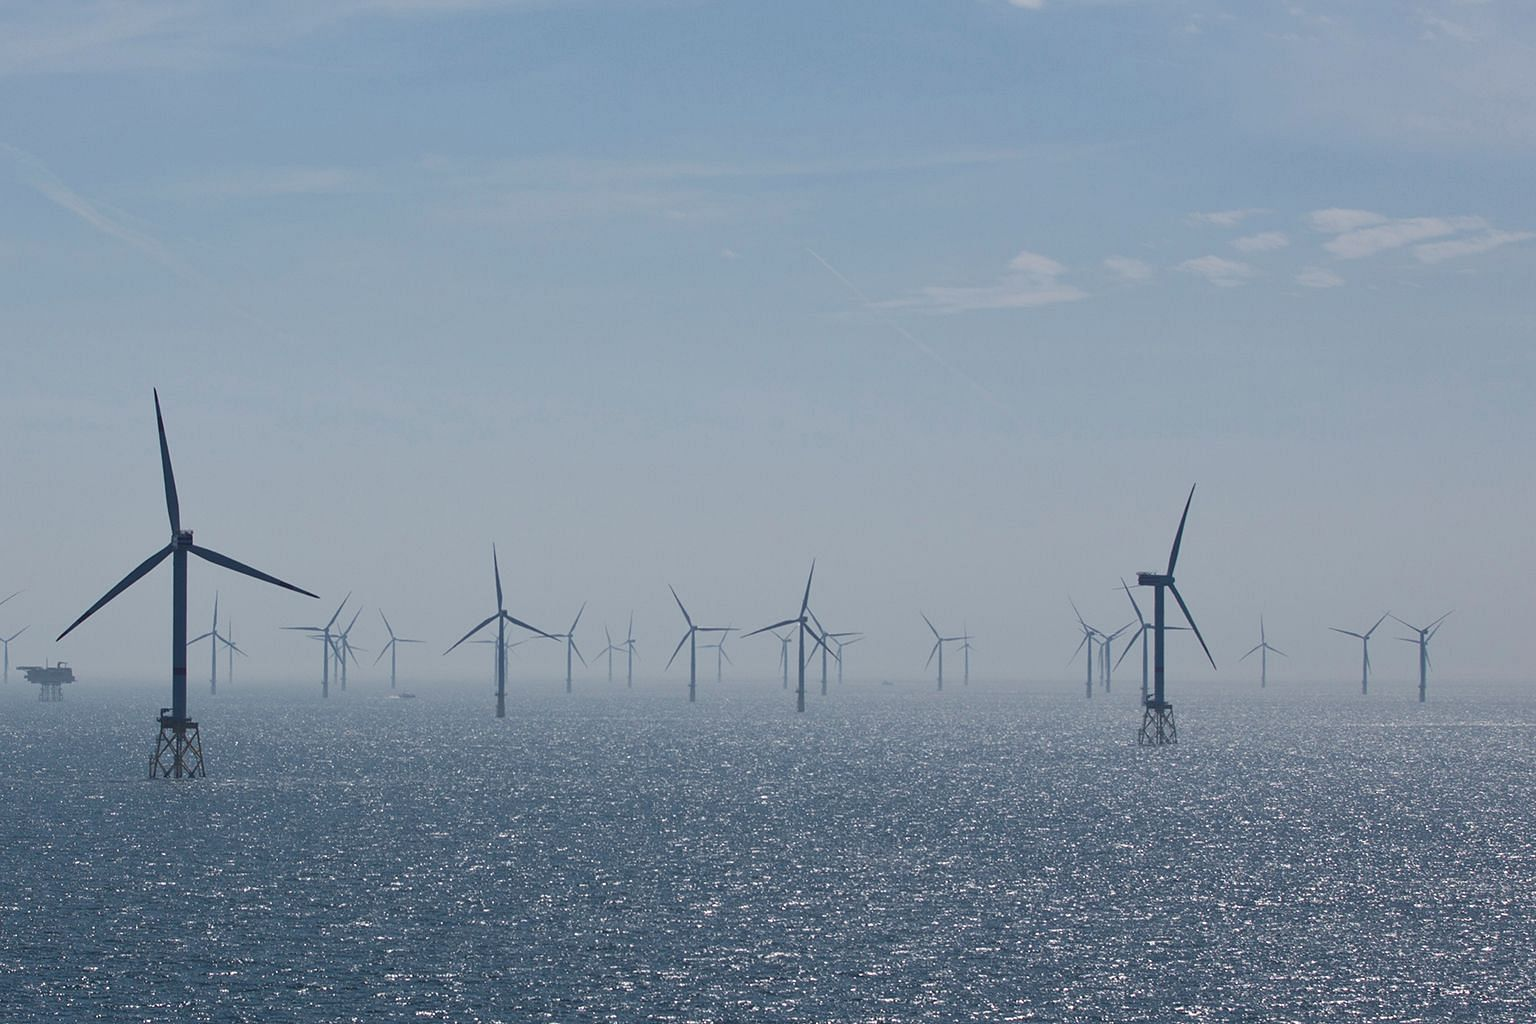 The Nordsee Ost Offshore Wind Farm in the North Sea, another project by German utilities company RWE, seen in a 2015 file photo. Sembcorp Marine, together with GE Renewable Energy's Grid Solutions, will start early design works for RWE's new Sofia Offshor